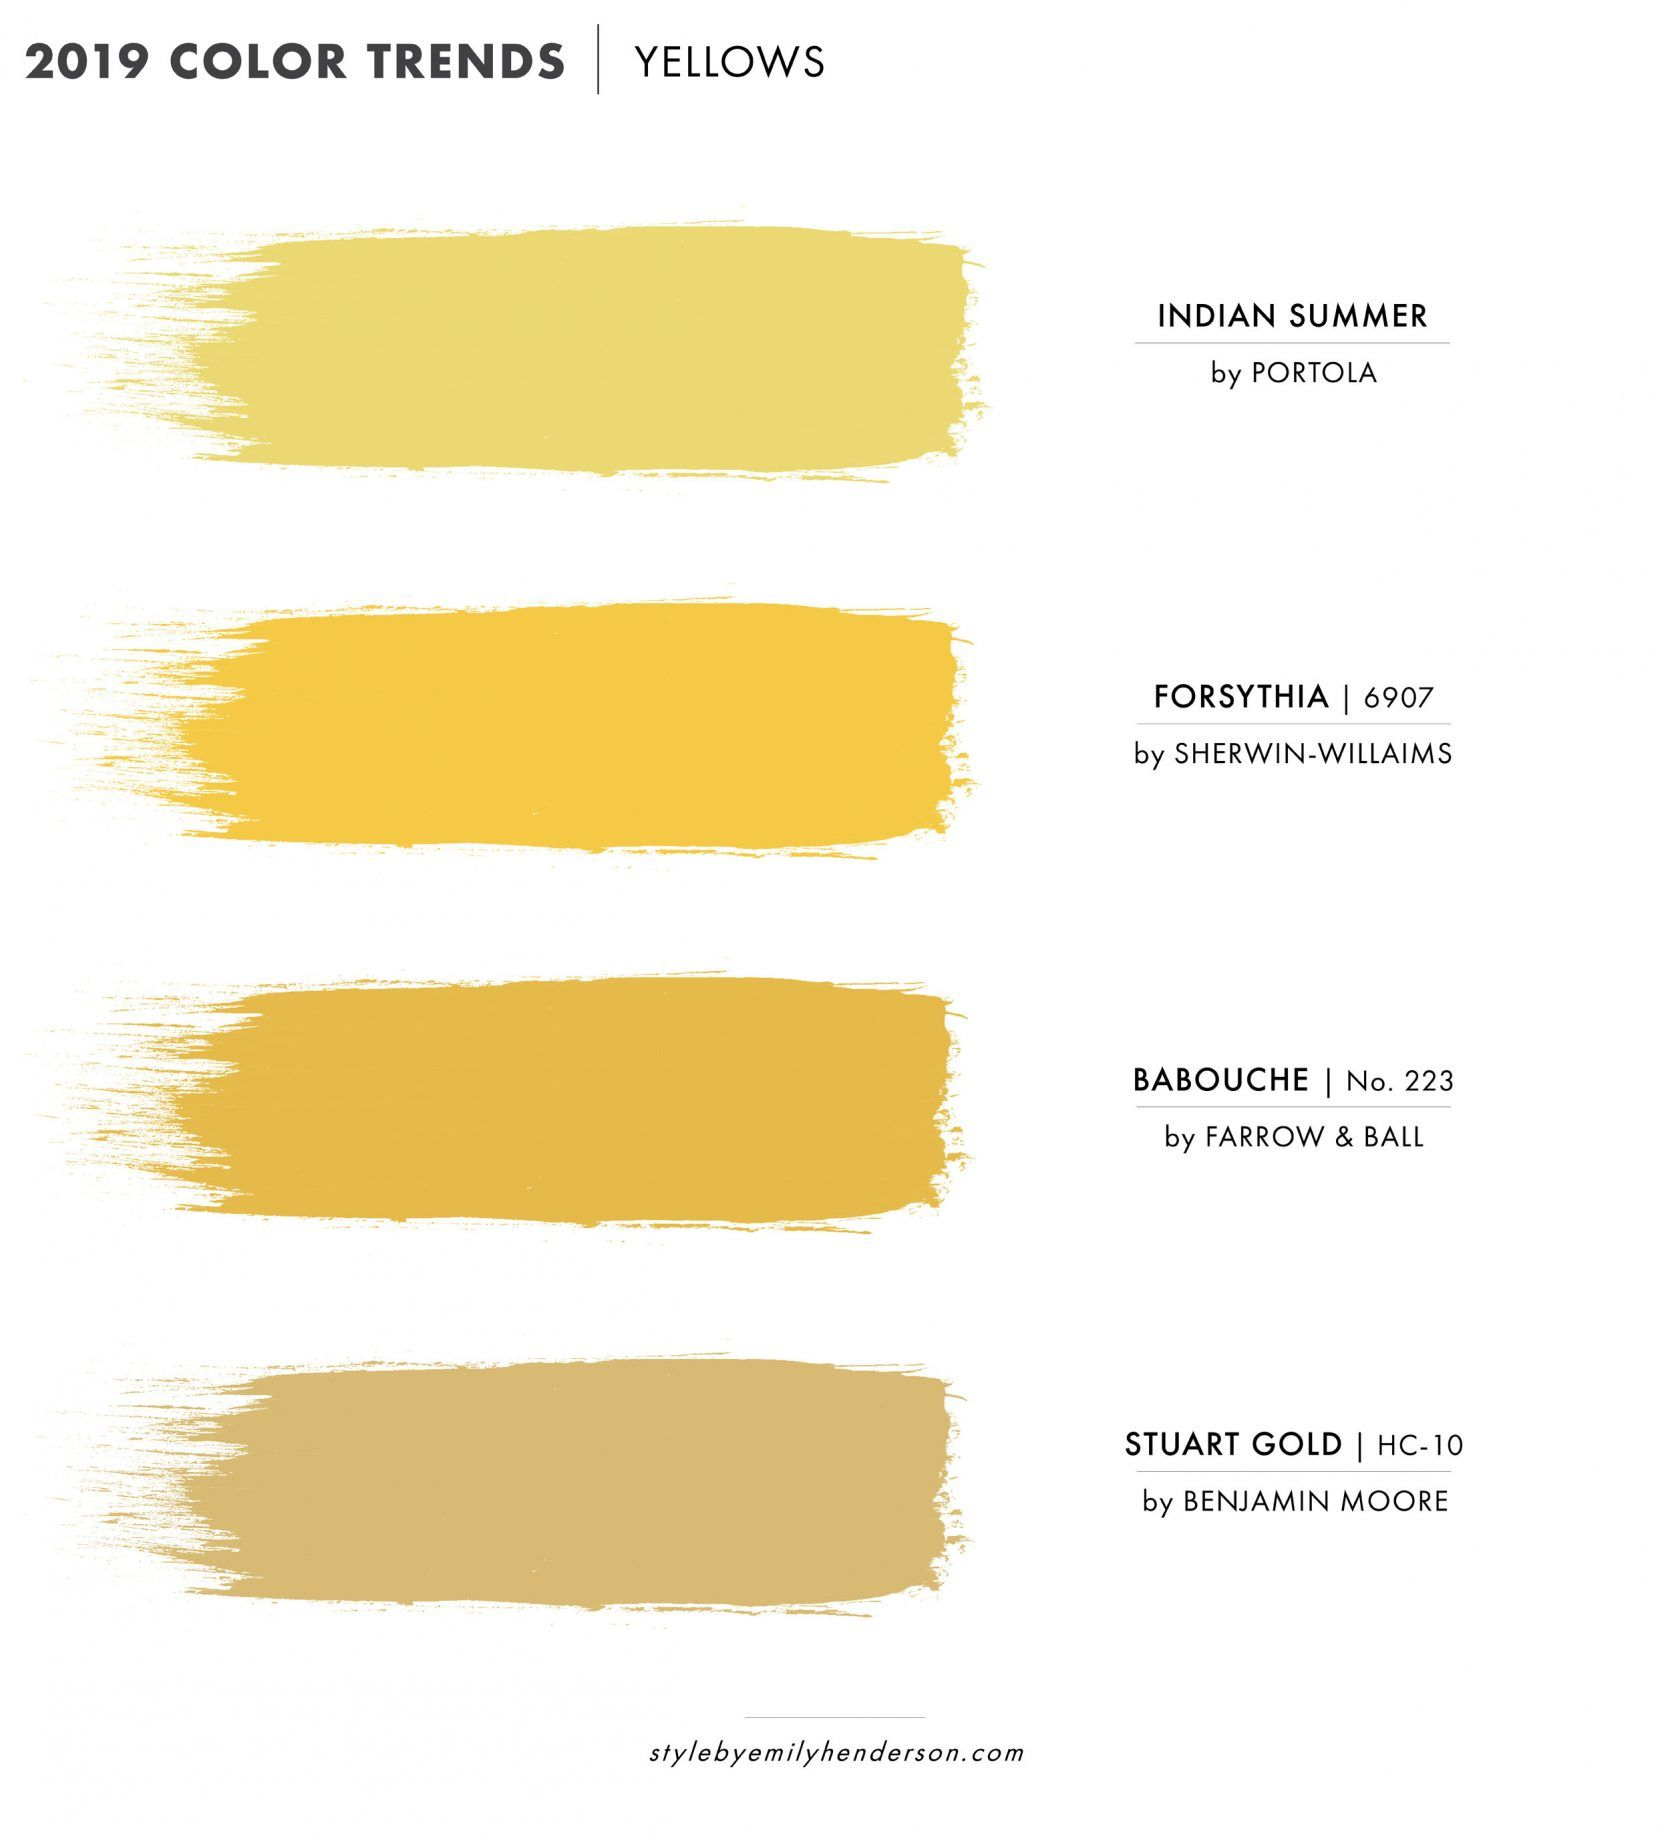 2019 Paint Color Trends Emily Henderson Trending Paint Colors Yellow Paint Colors Gold Paint Colors